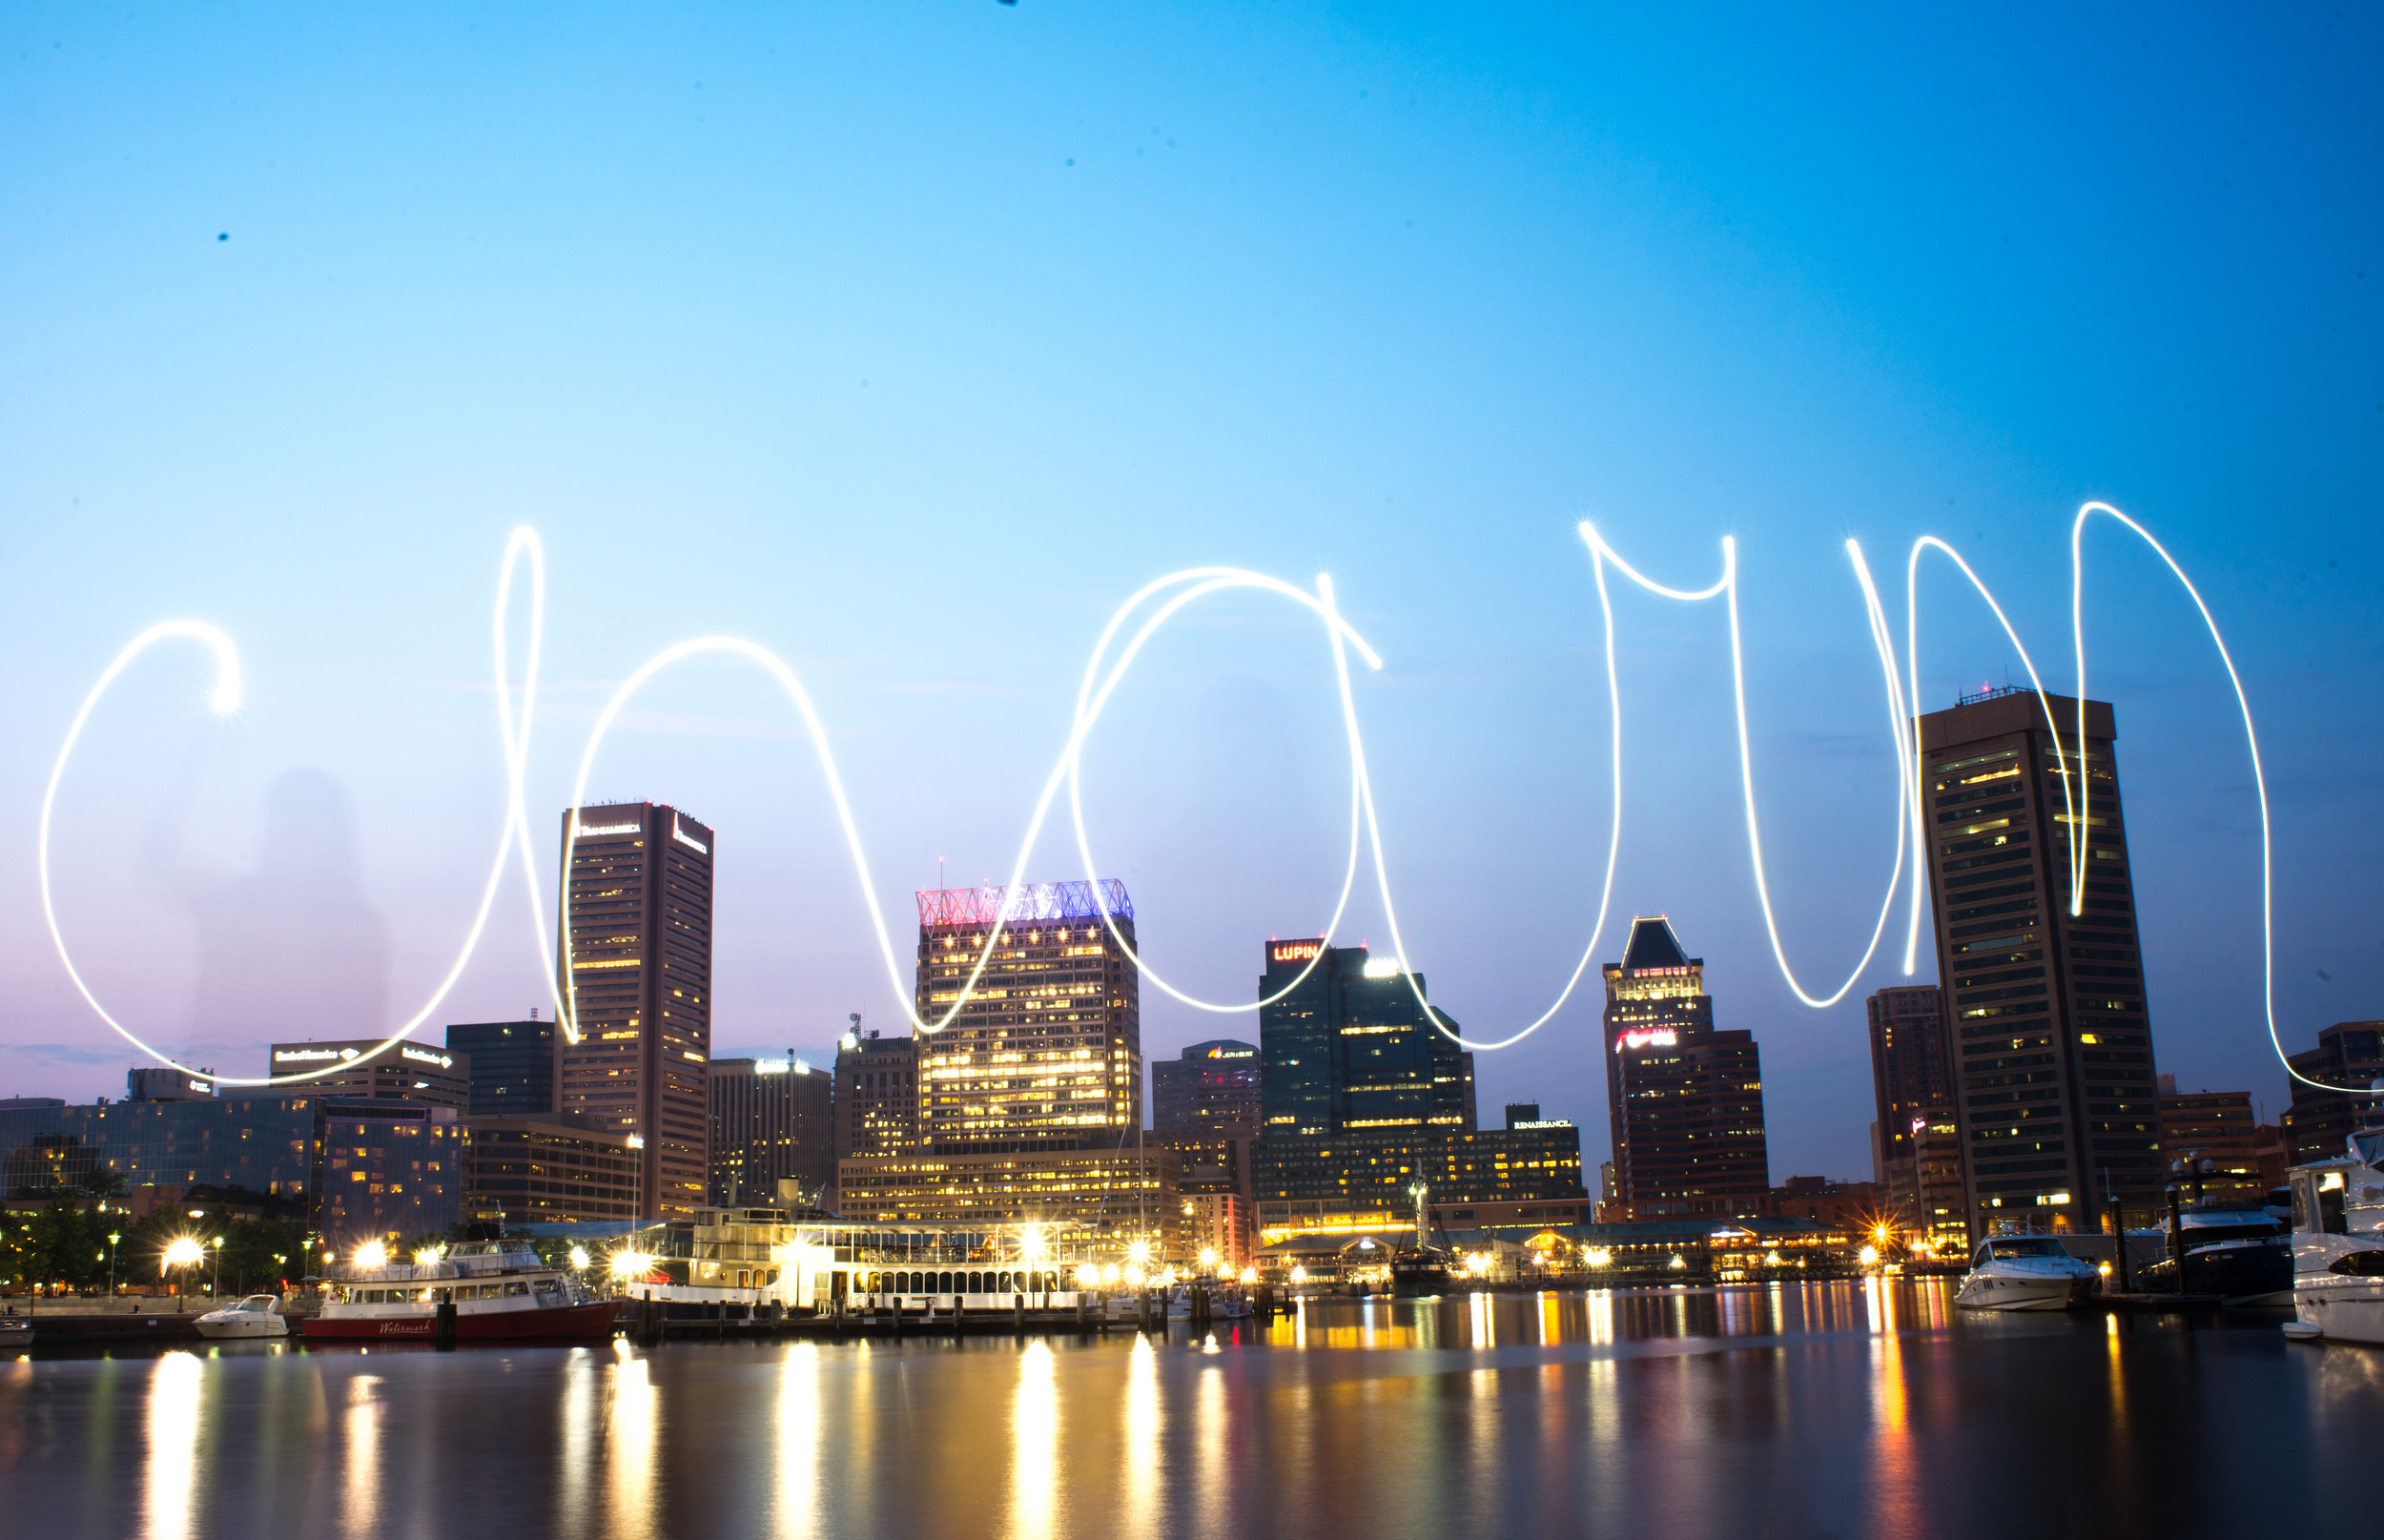 Baltimore City Skyline Night Photography